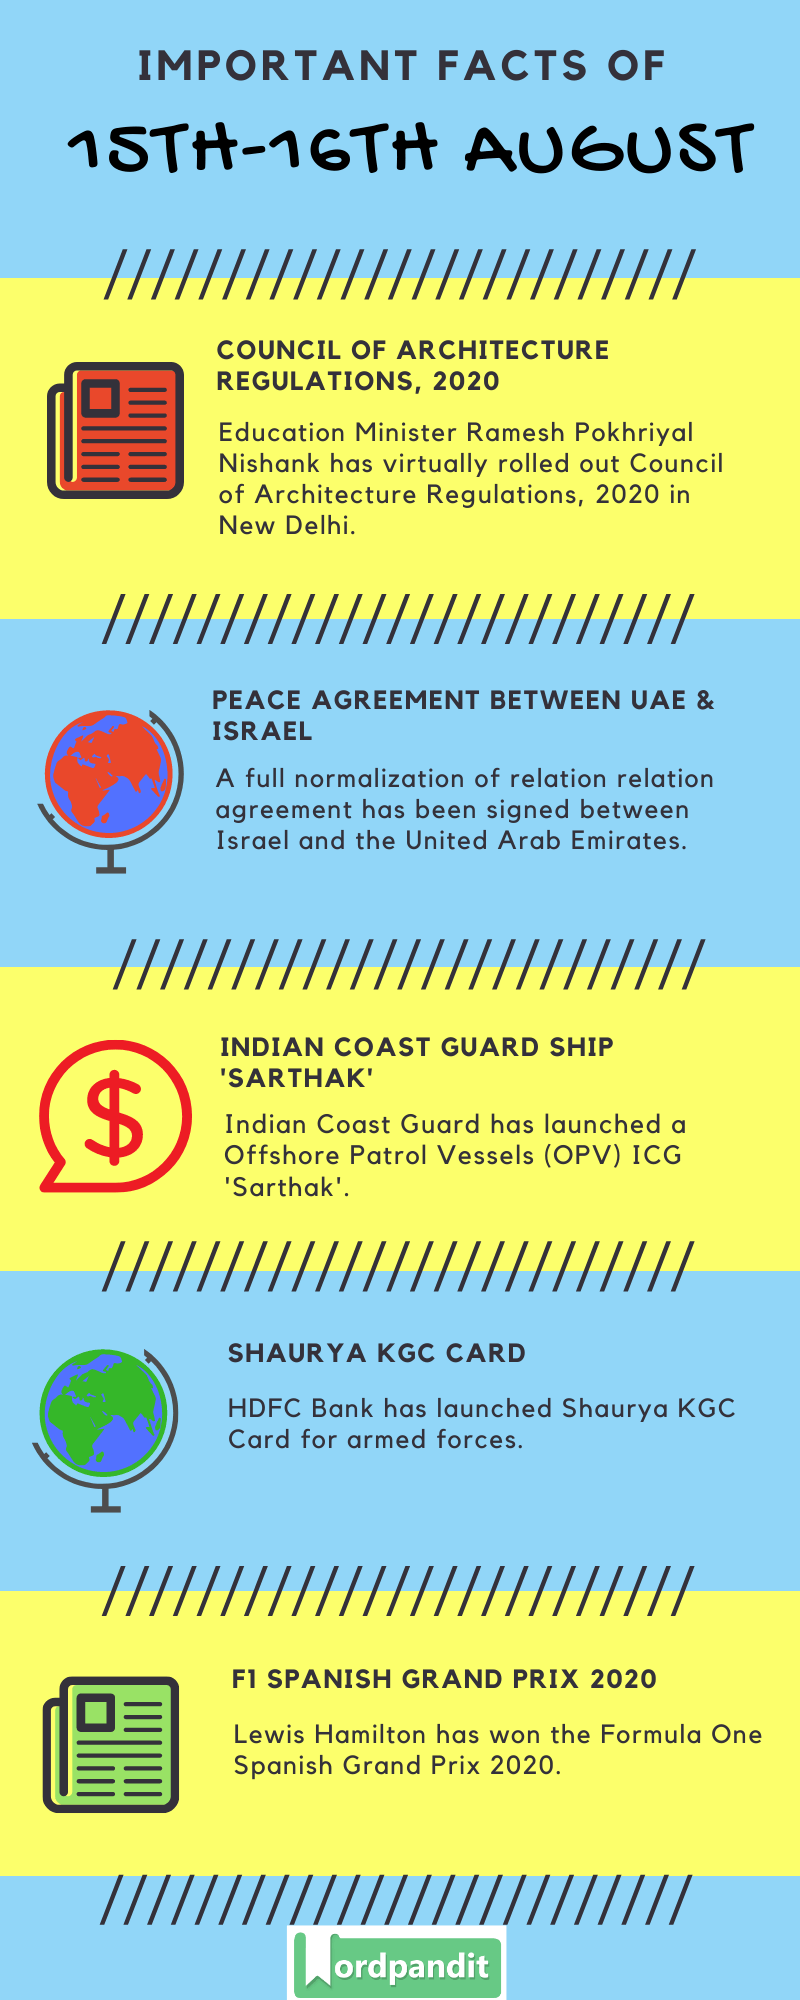 Daily Current Affairs 15th-16th August 2020 Current Affairs Quiz 15th-16th August 2020 Current Affairs Infographic